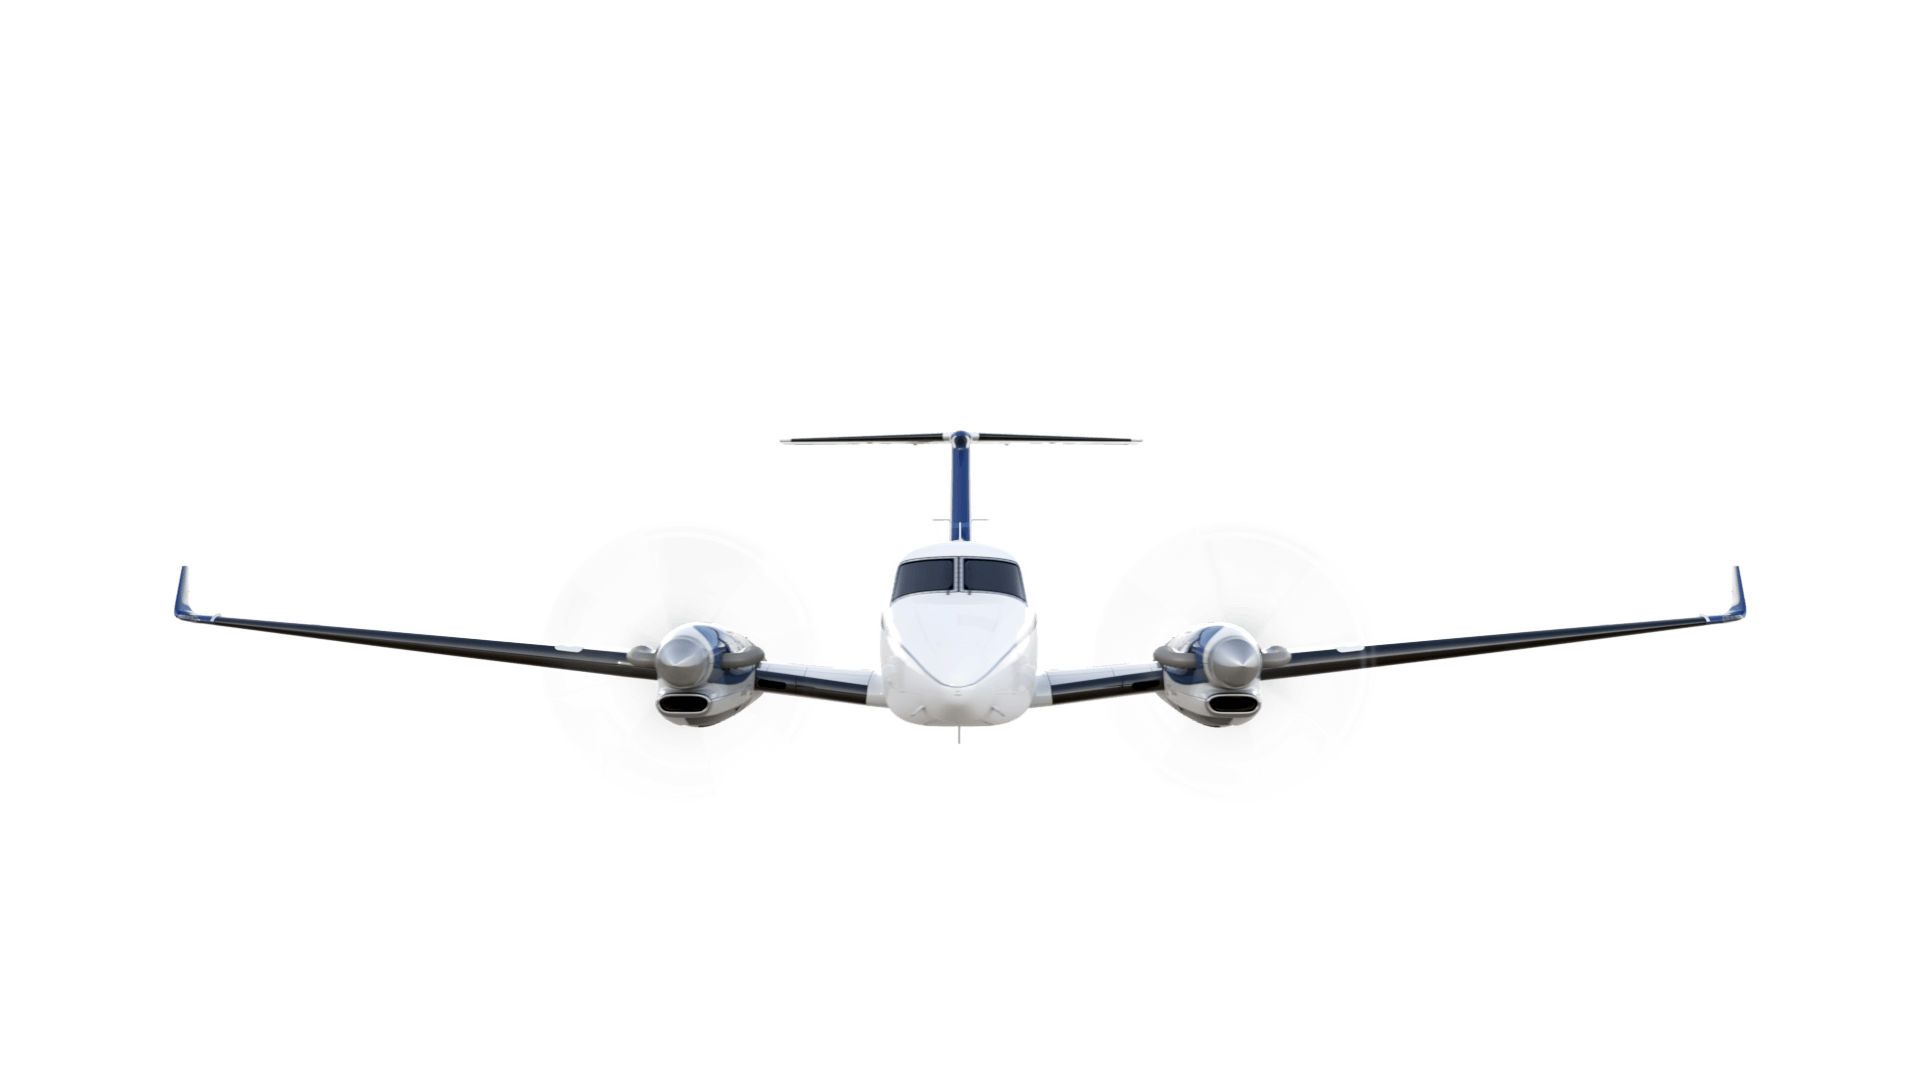 King air clipart royalty free library Private Plane Fleet - King Air 350i royalty free library